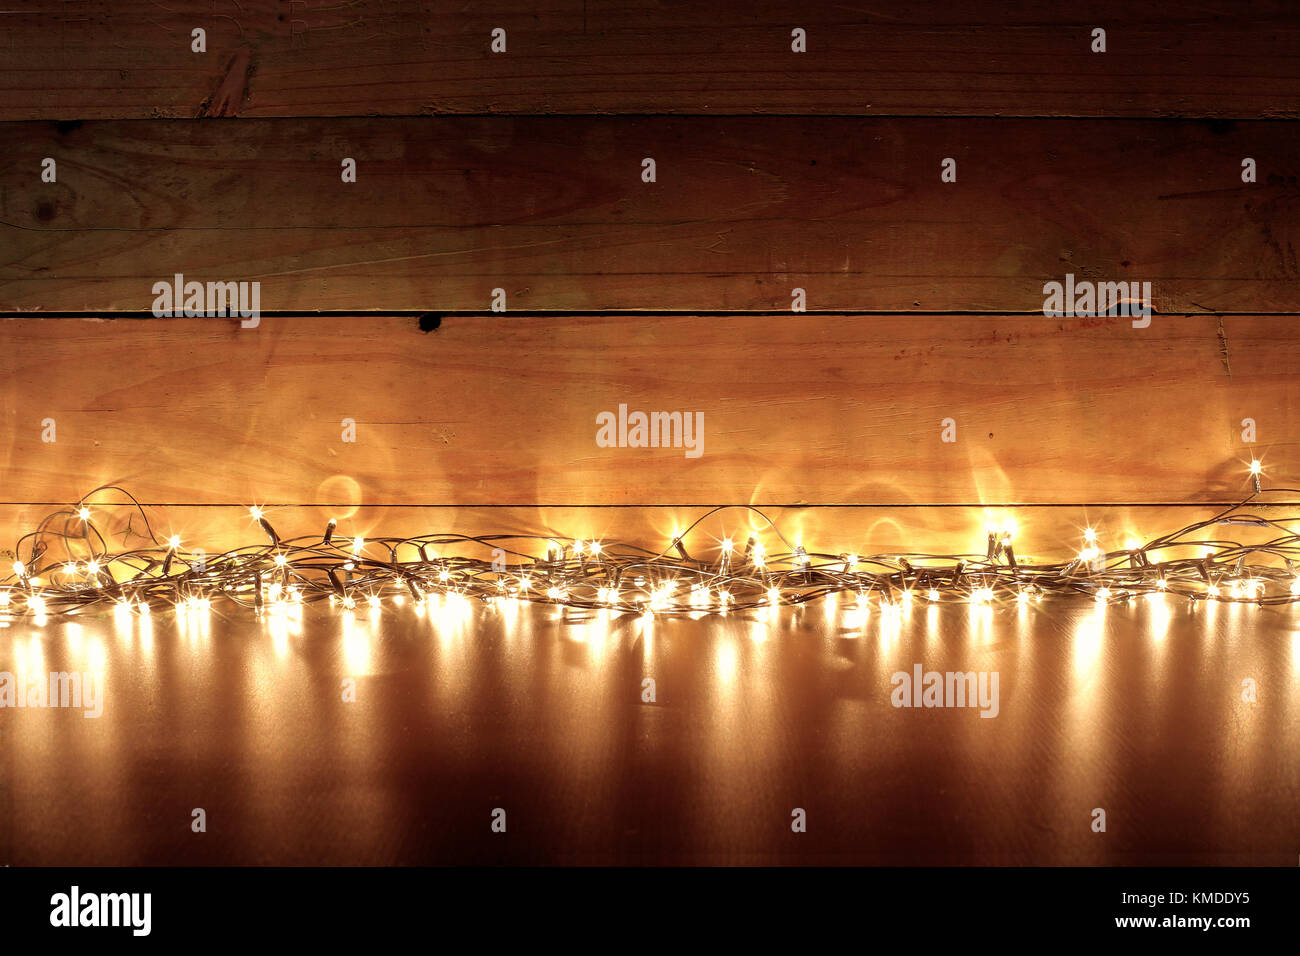 hot sale online 5723a 9748a Fairy Lights on Wooden Background Stock Photo: 167482761 - Alamy